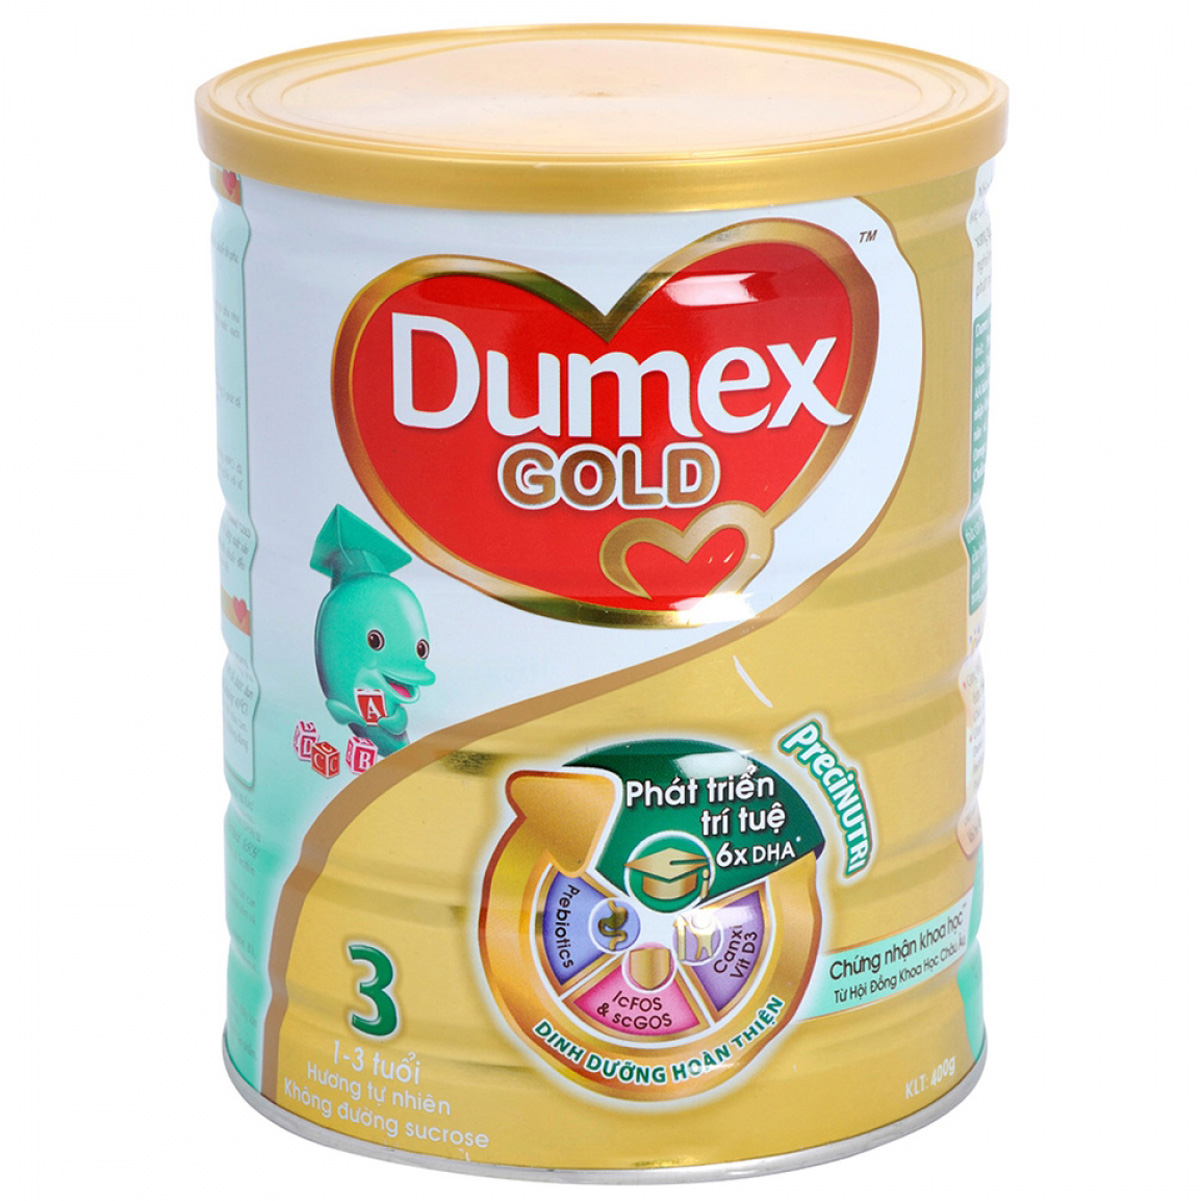 sua bot Dumex Gold so 3 400g